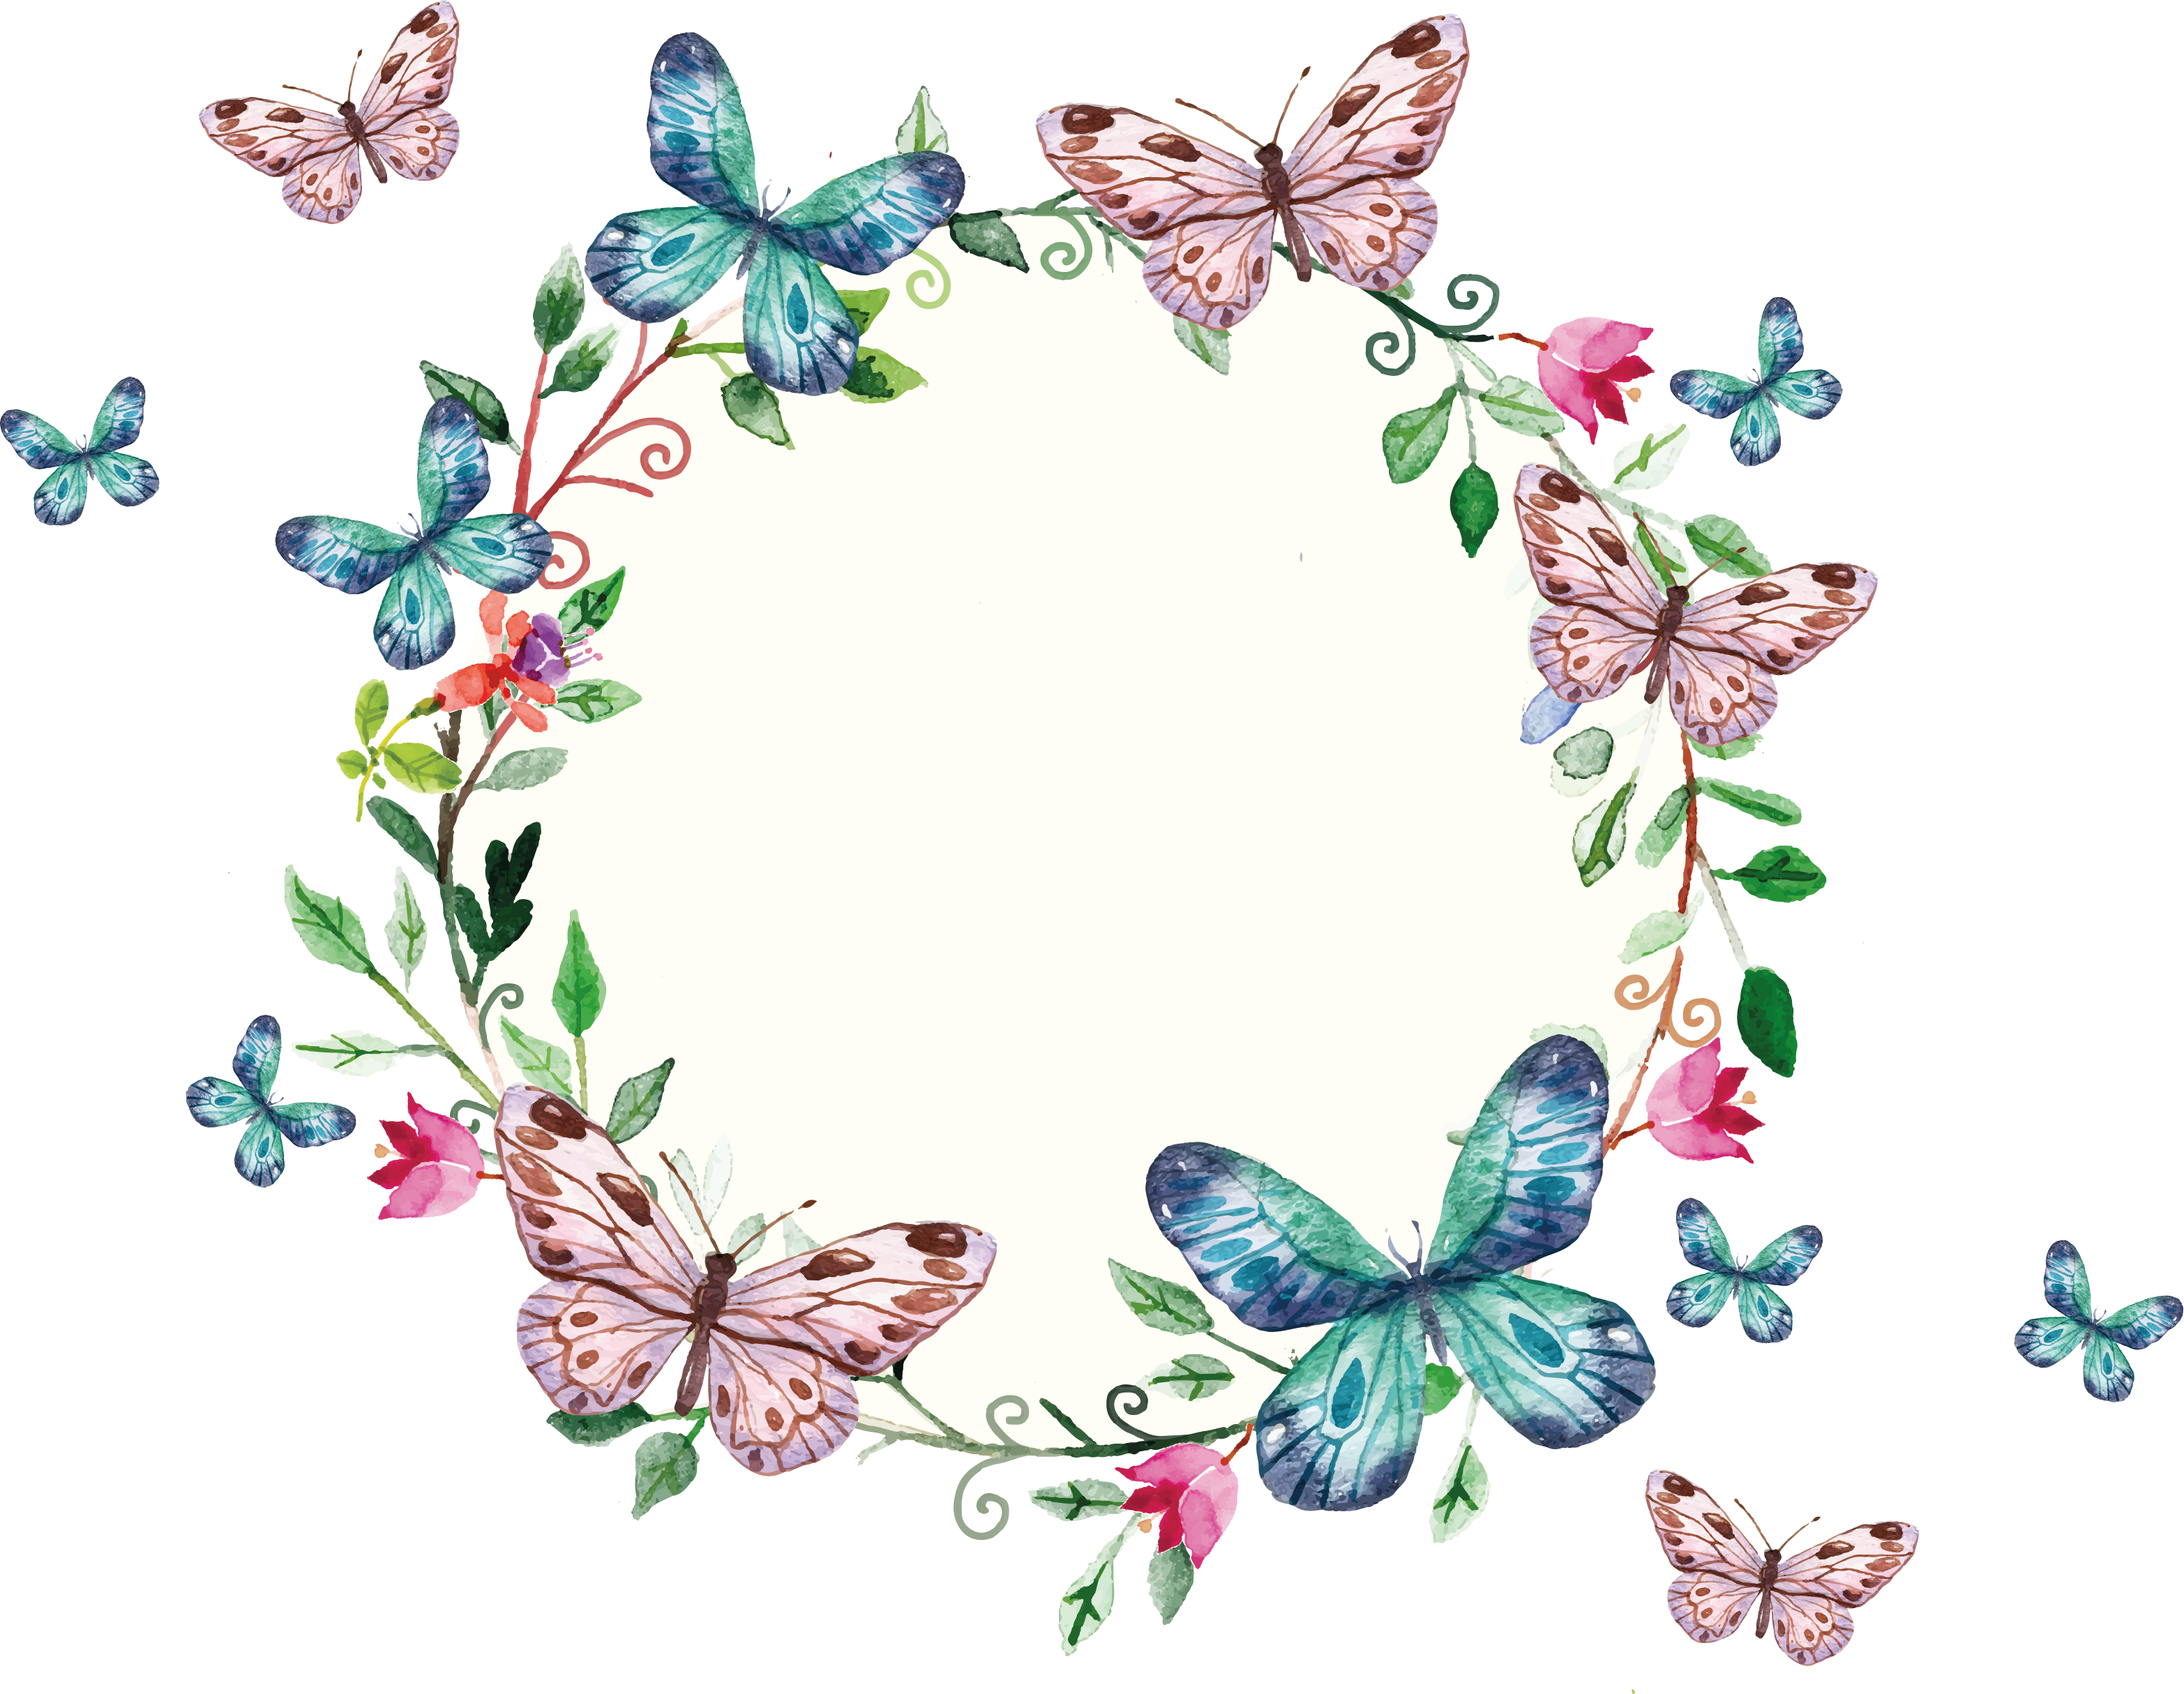 Butterfly border png. Freepi com floral wreath